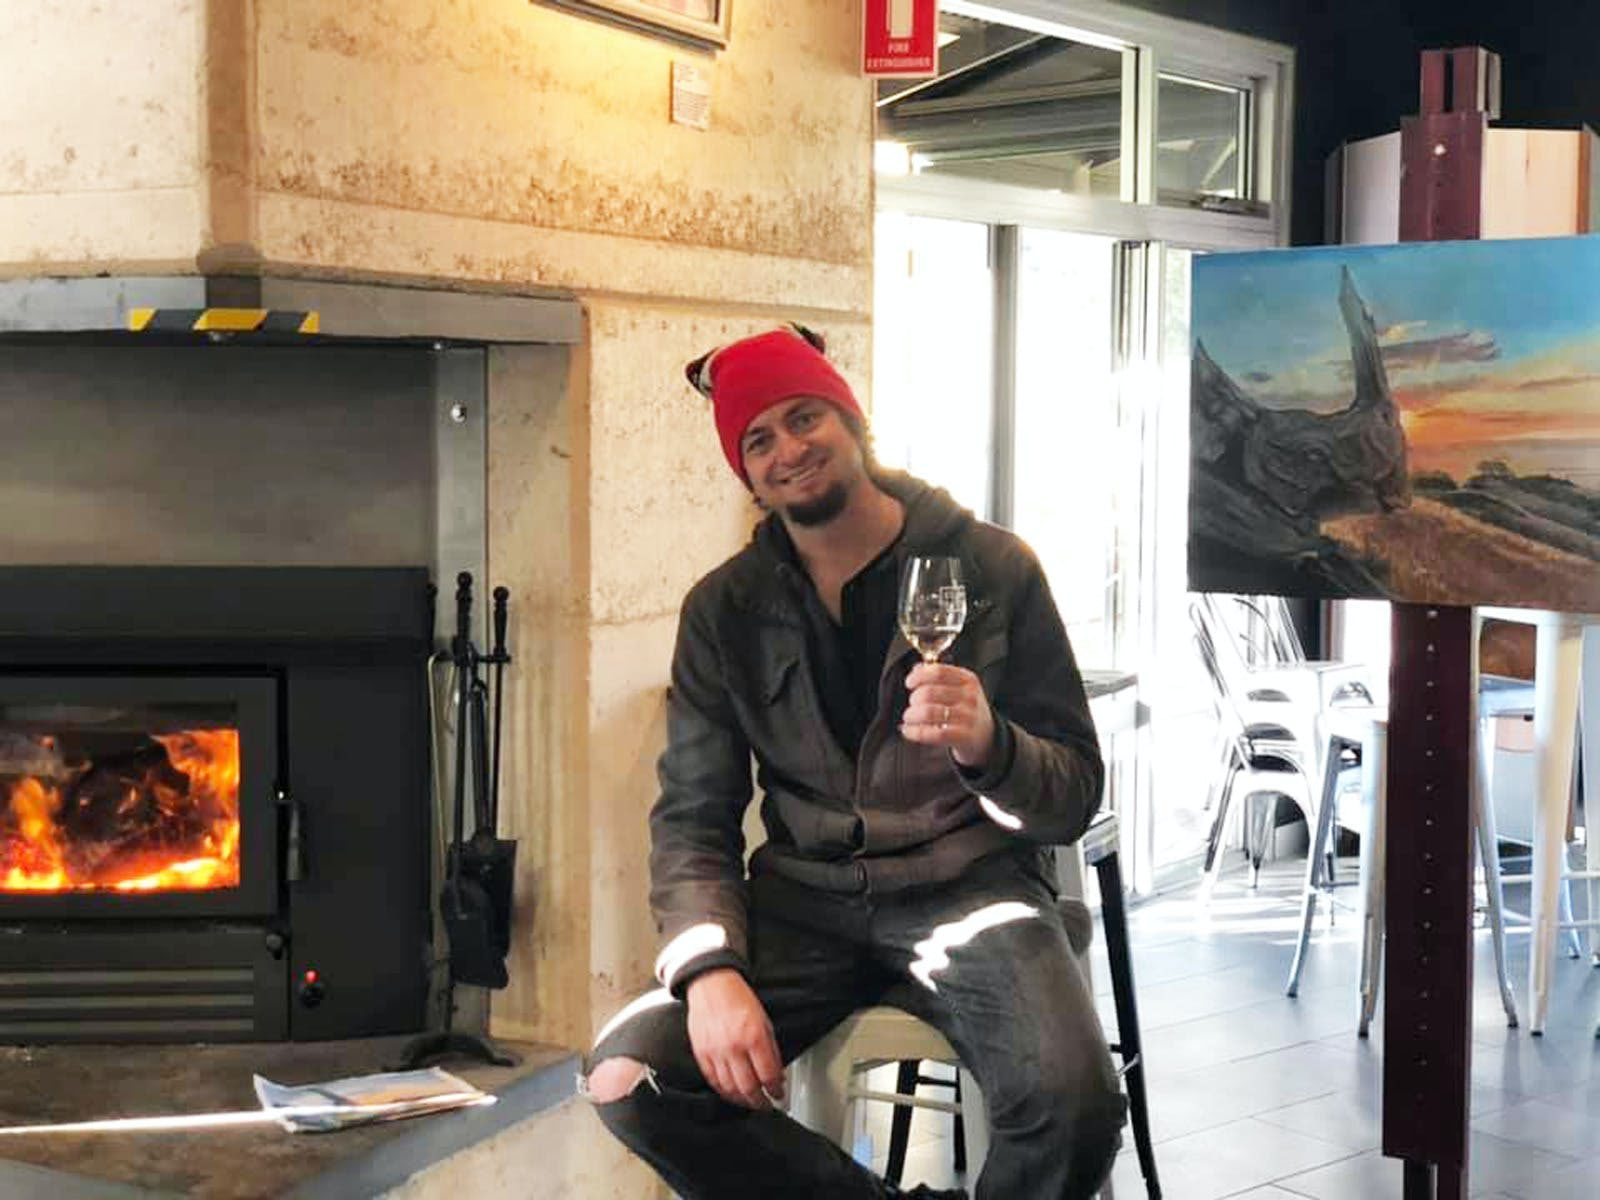 Stu holding a glass of wine beside his painting of a landscape